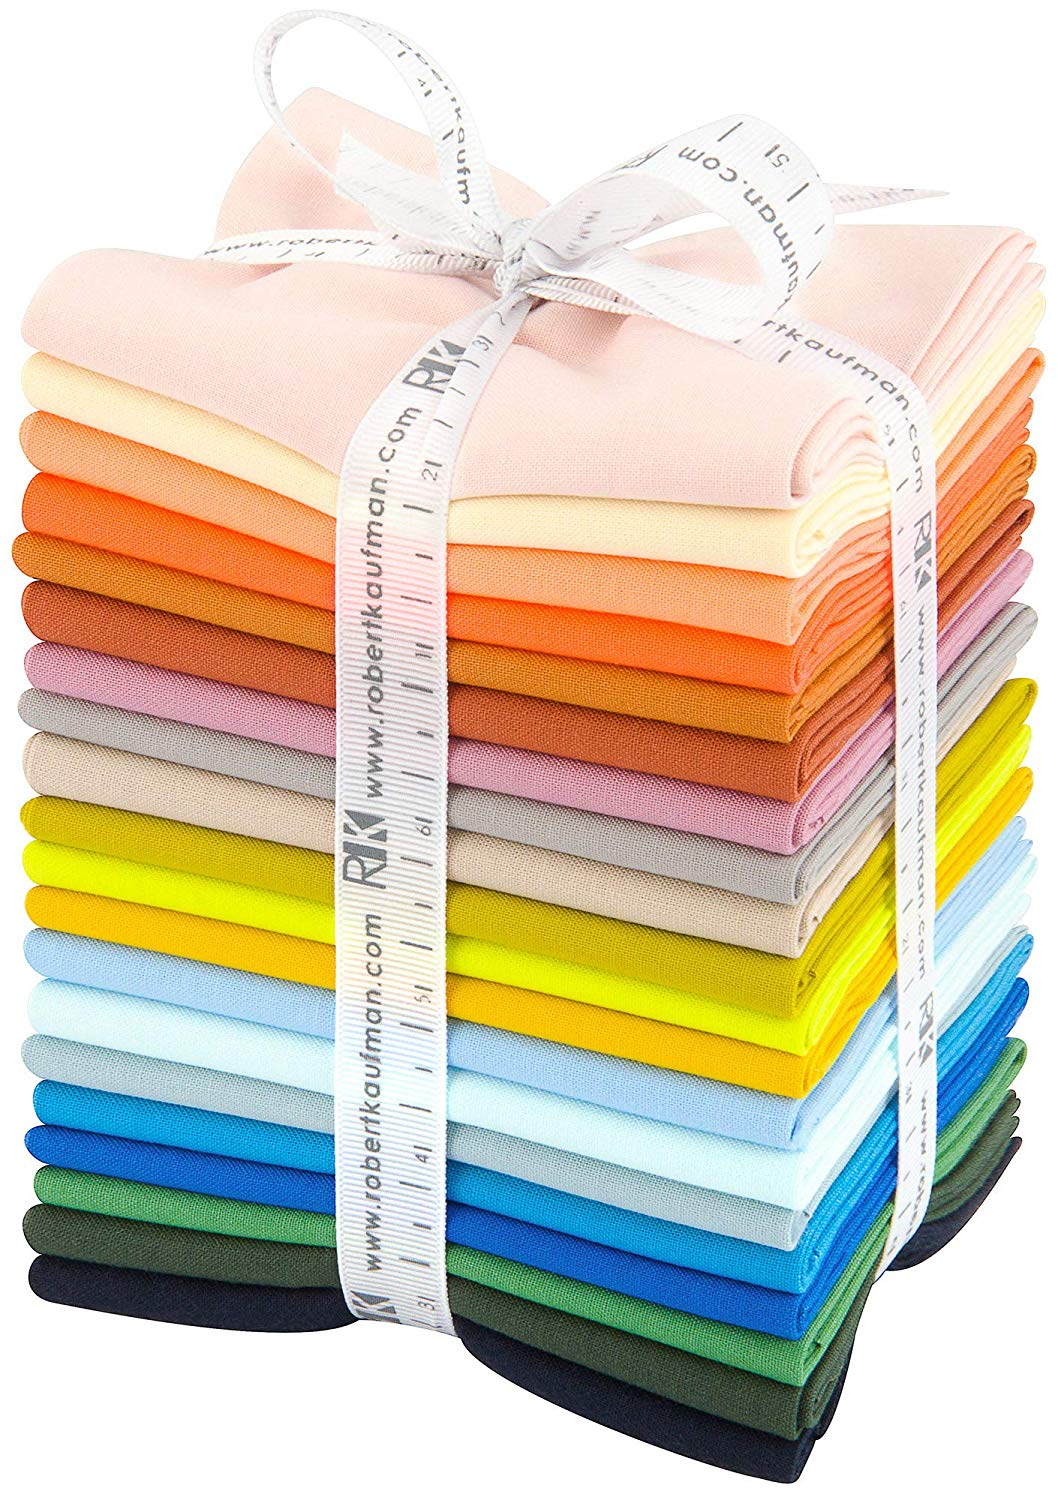 Kona Cotton Solid Fat Quarter Bundle - Carolyn Friedlander Curated 20pcs